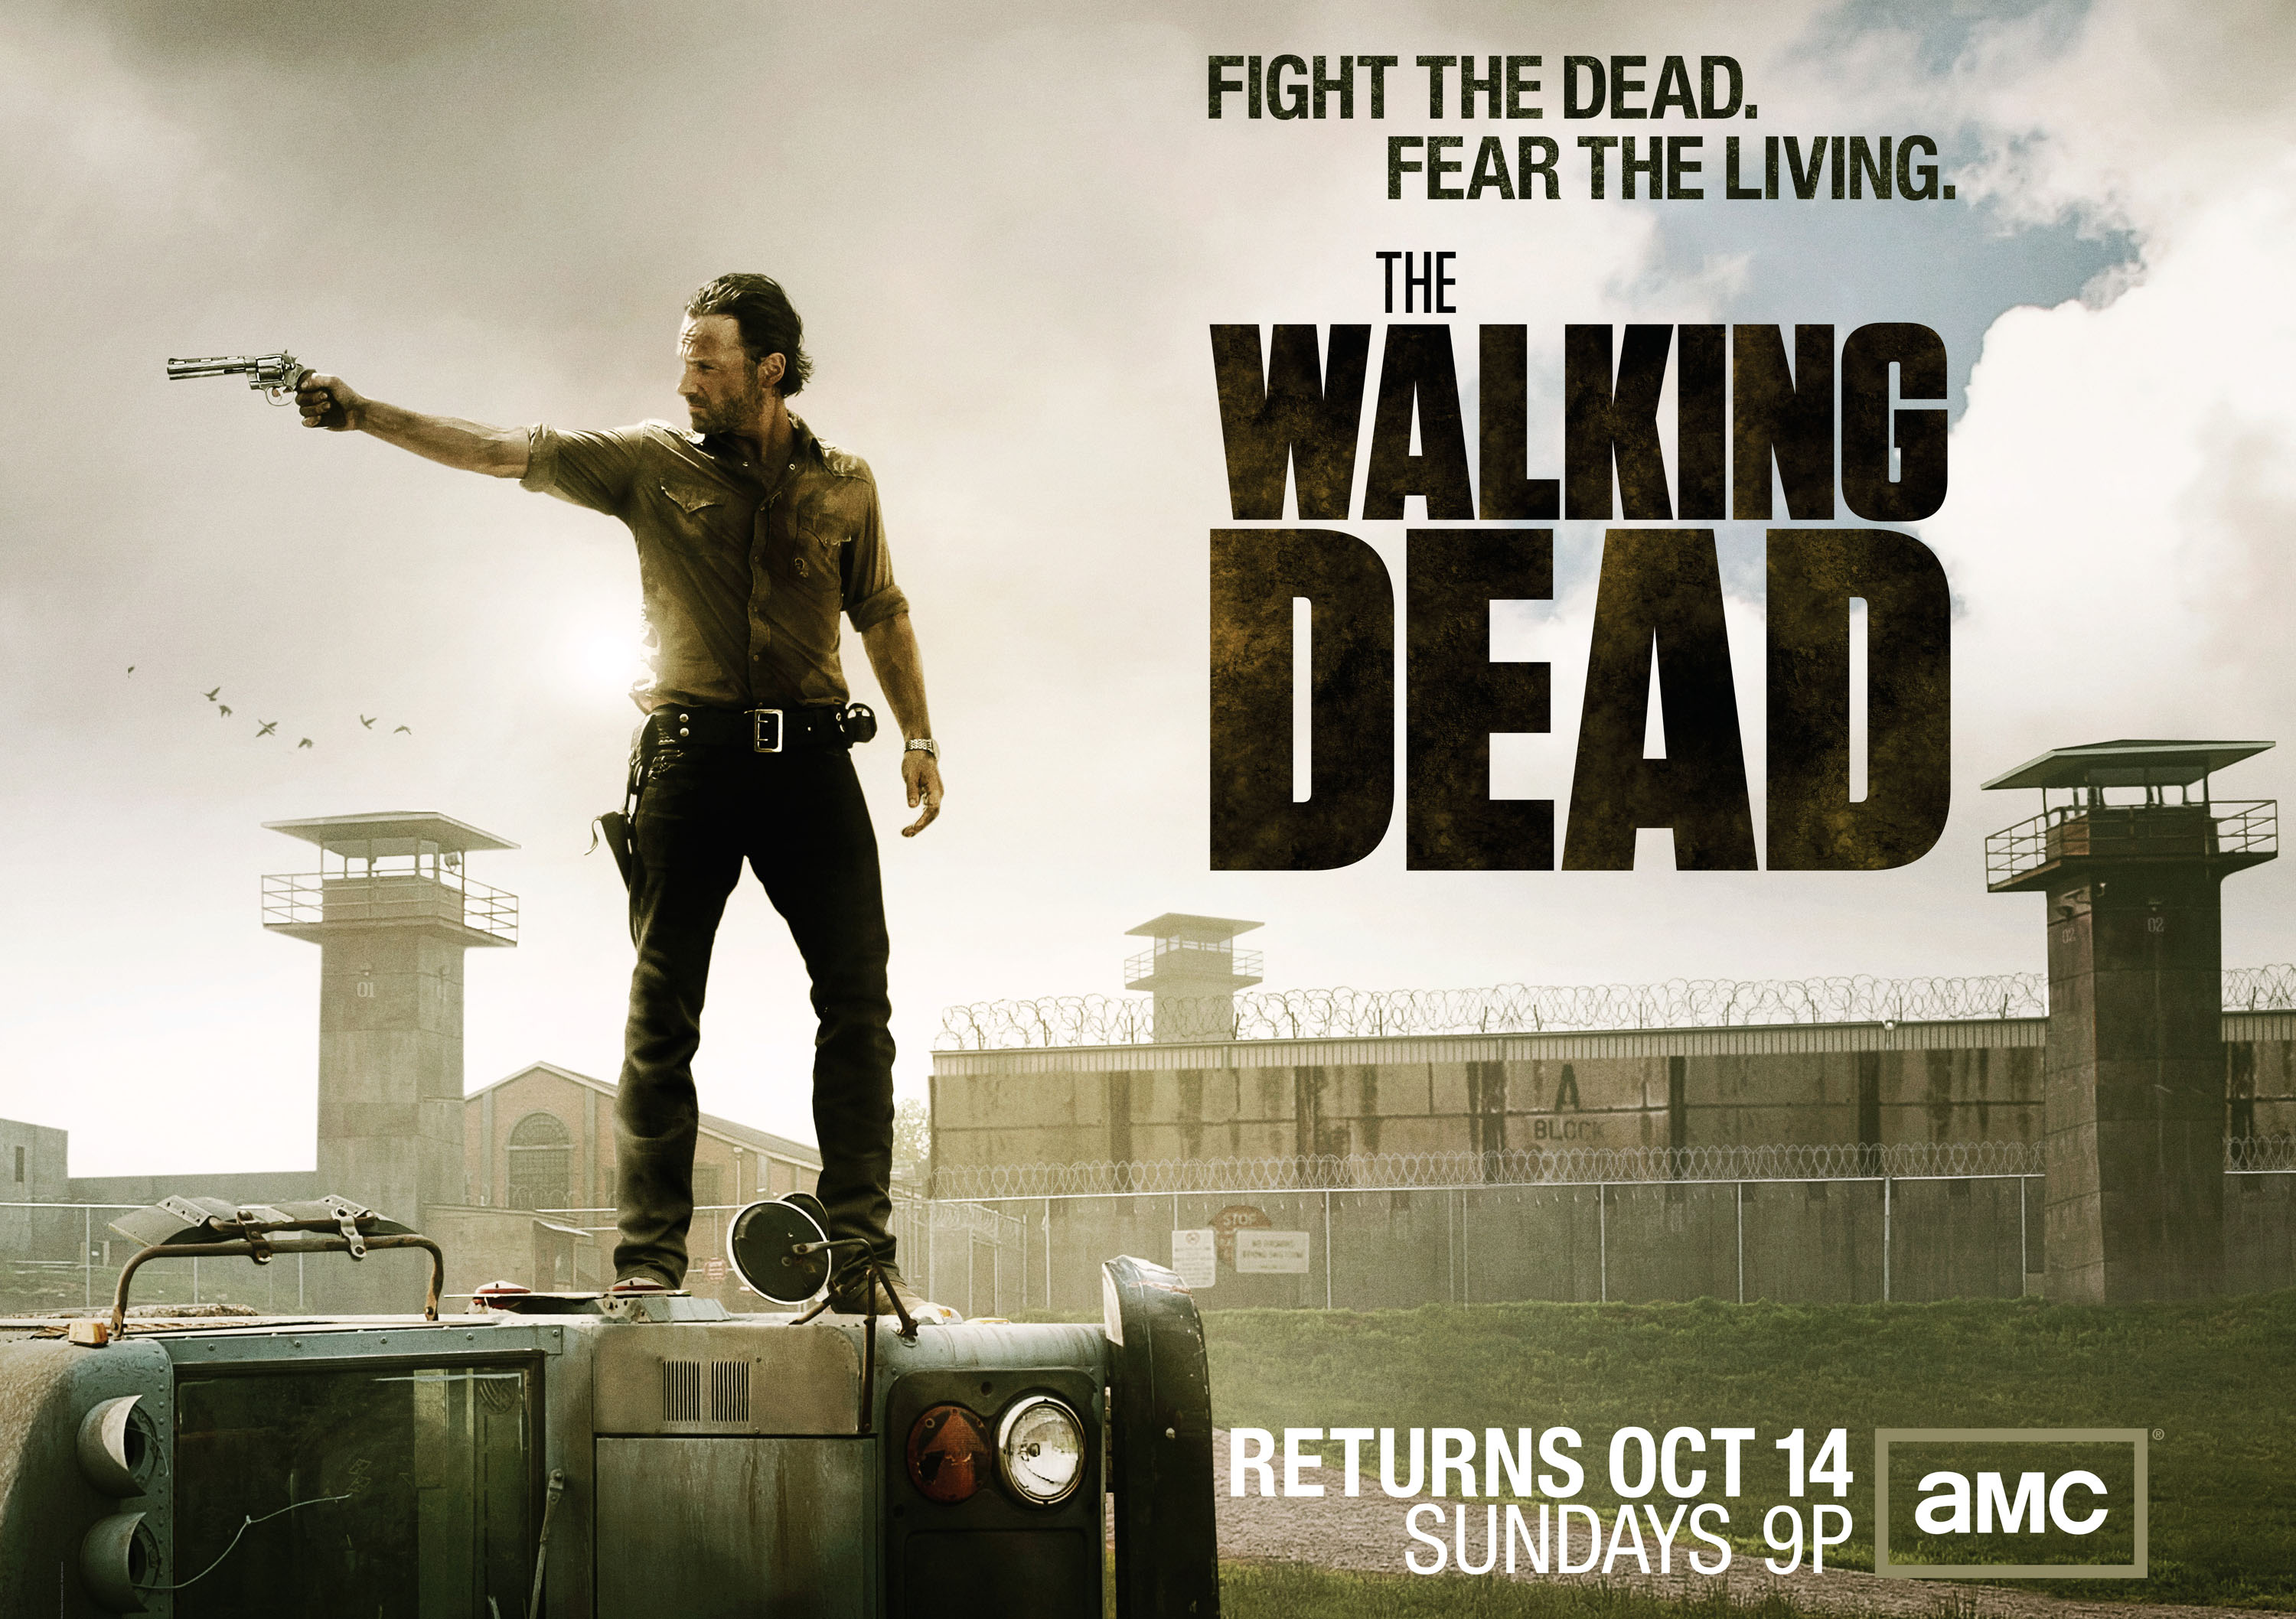 http://www.mariannedepierres.com/wp-content/uploads/The-Walking-Dead-02-poster.jpg